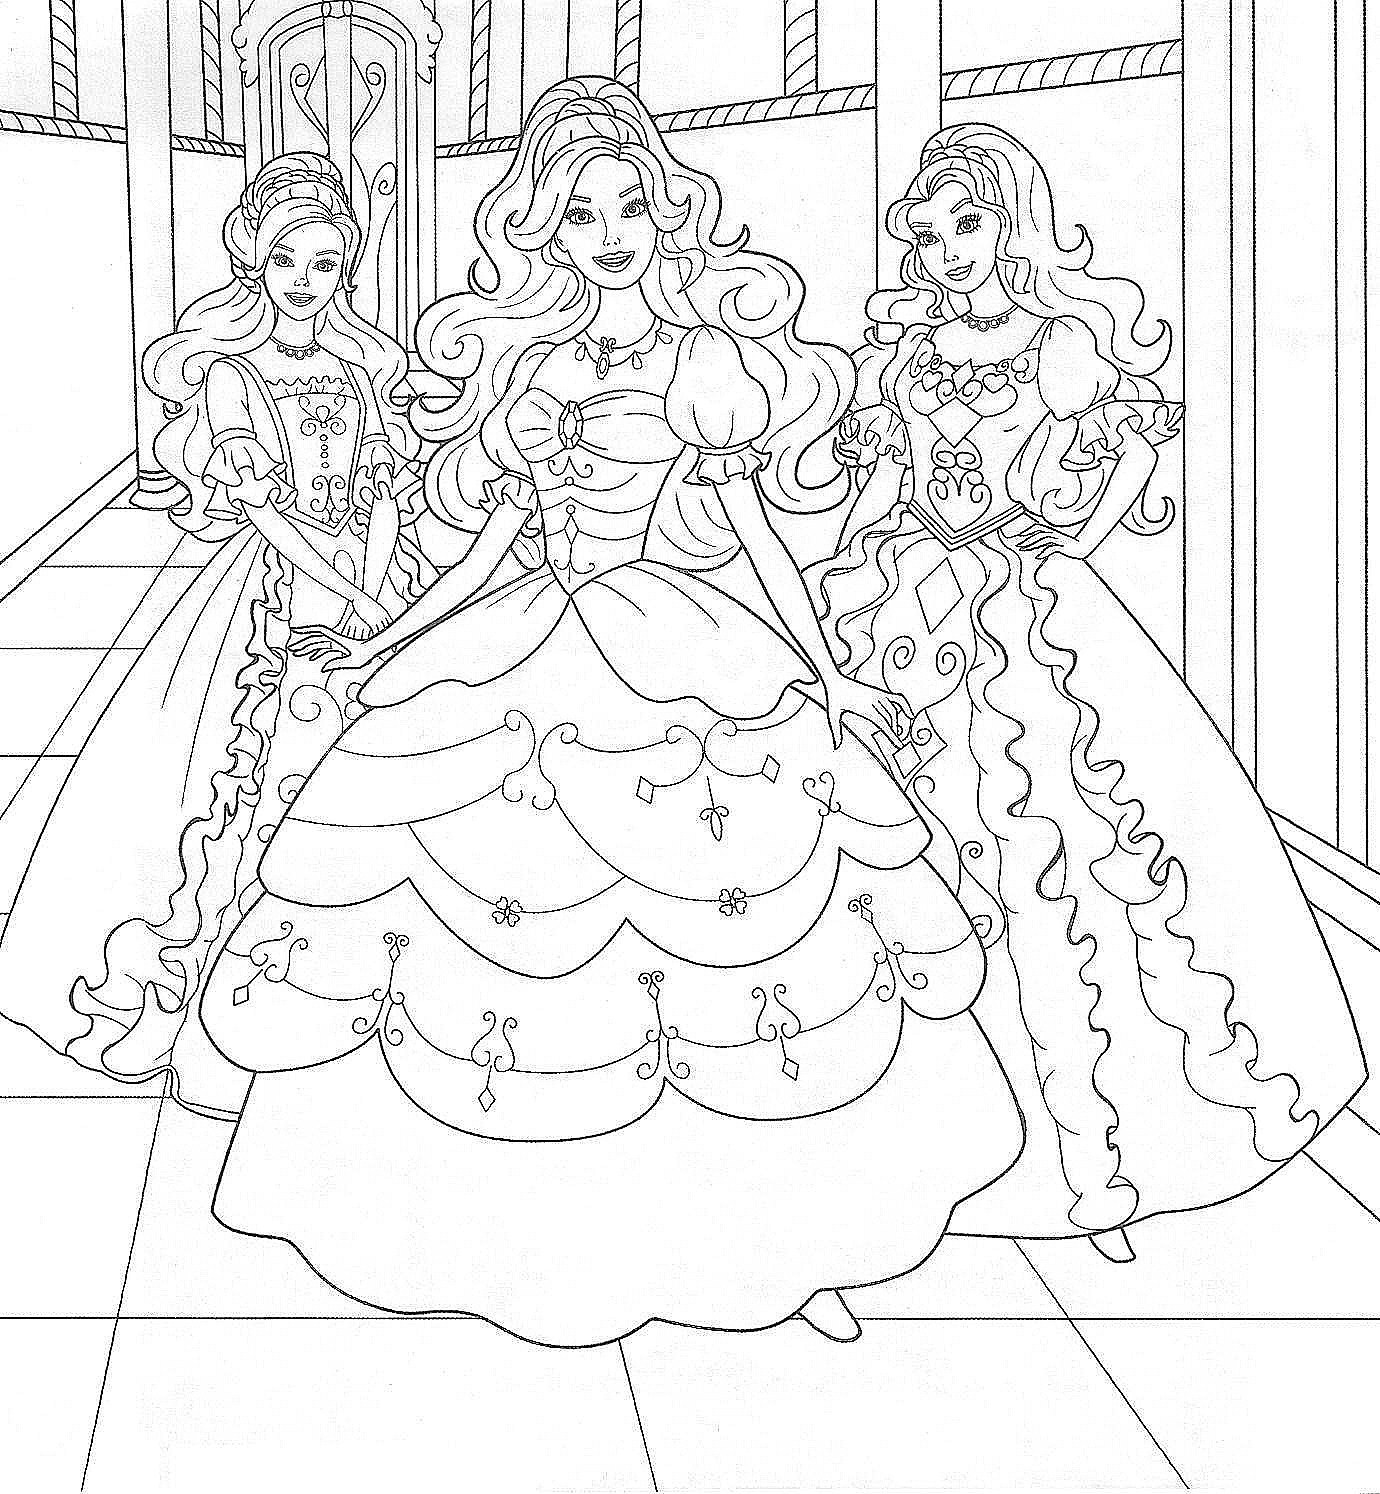 Free Barbie Coloring Book Pages, Download Free Clip Art, Free Clip ... | 1494x1380